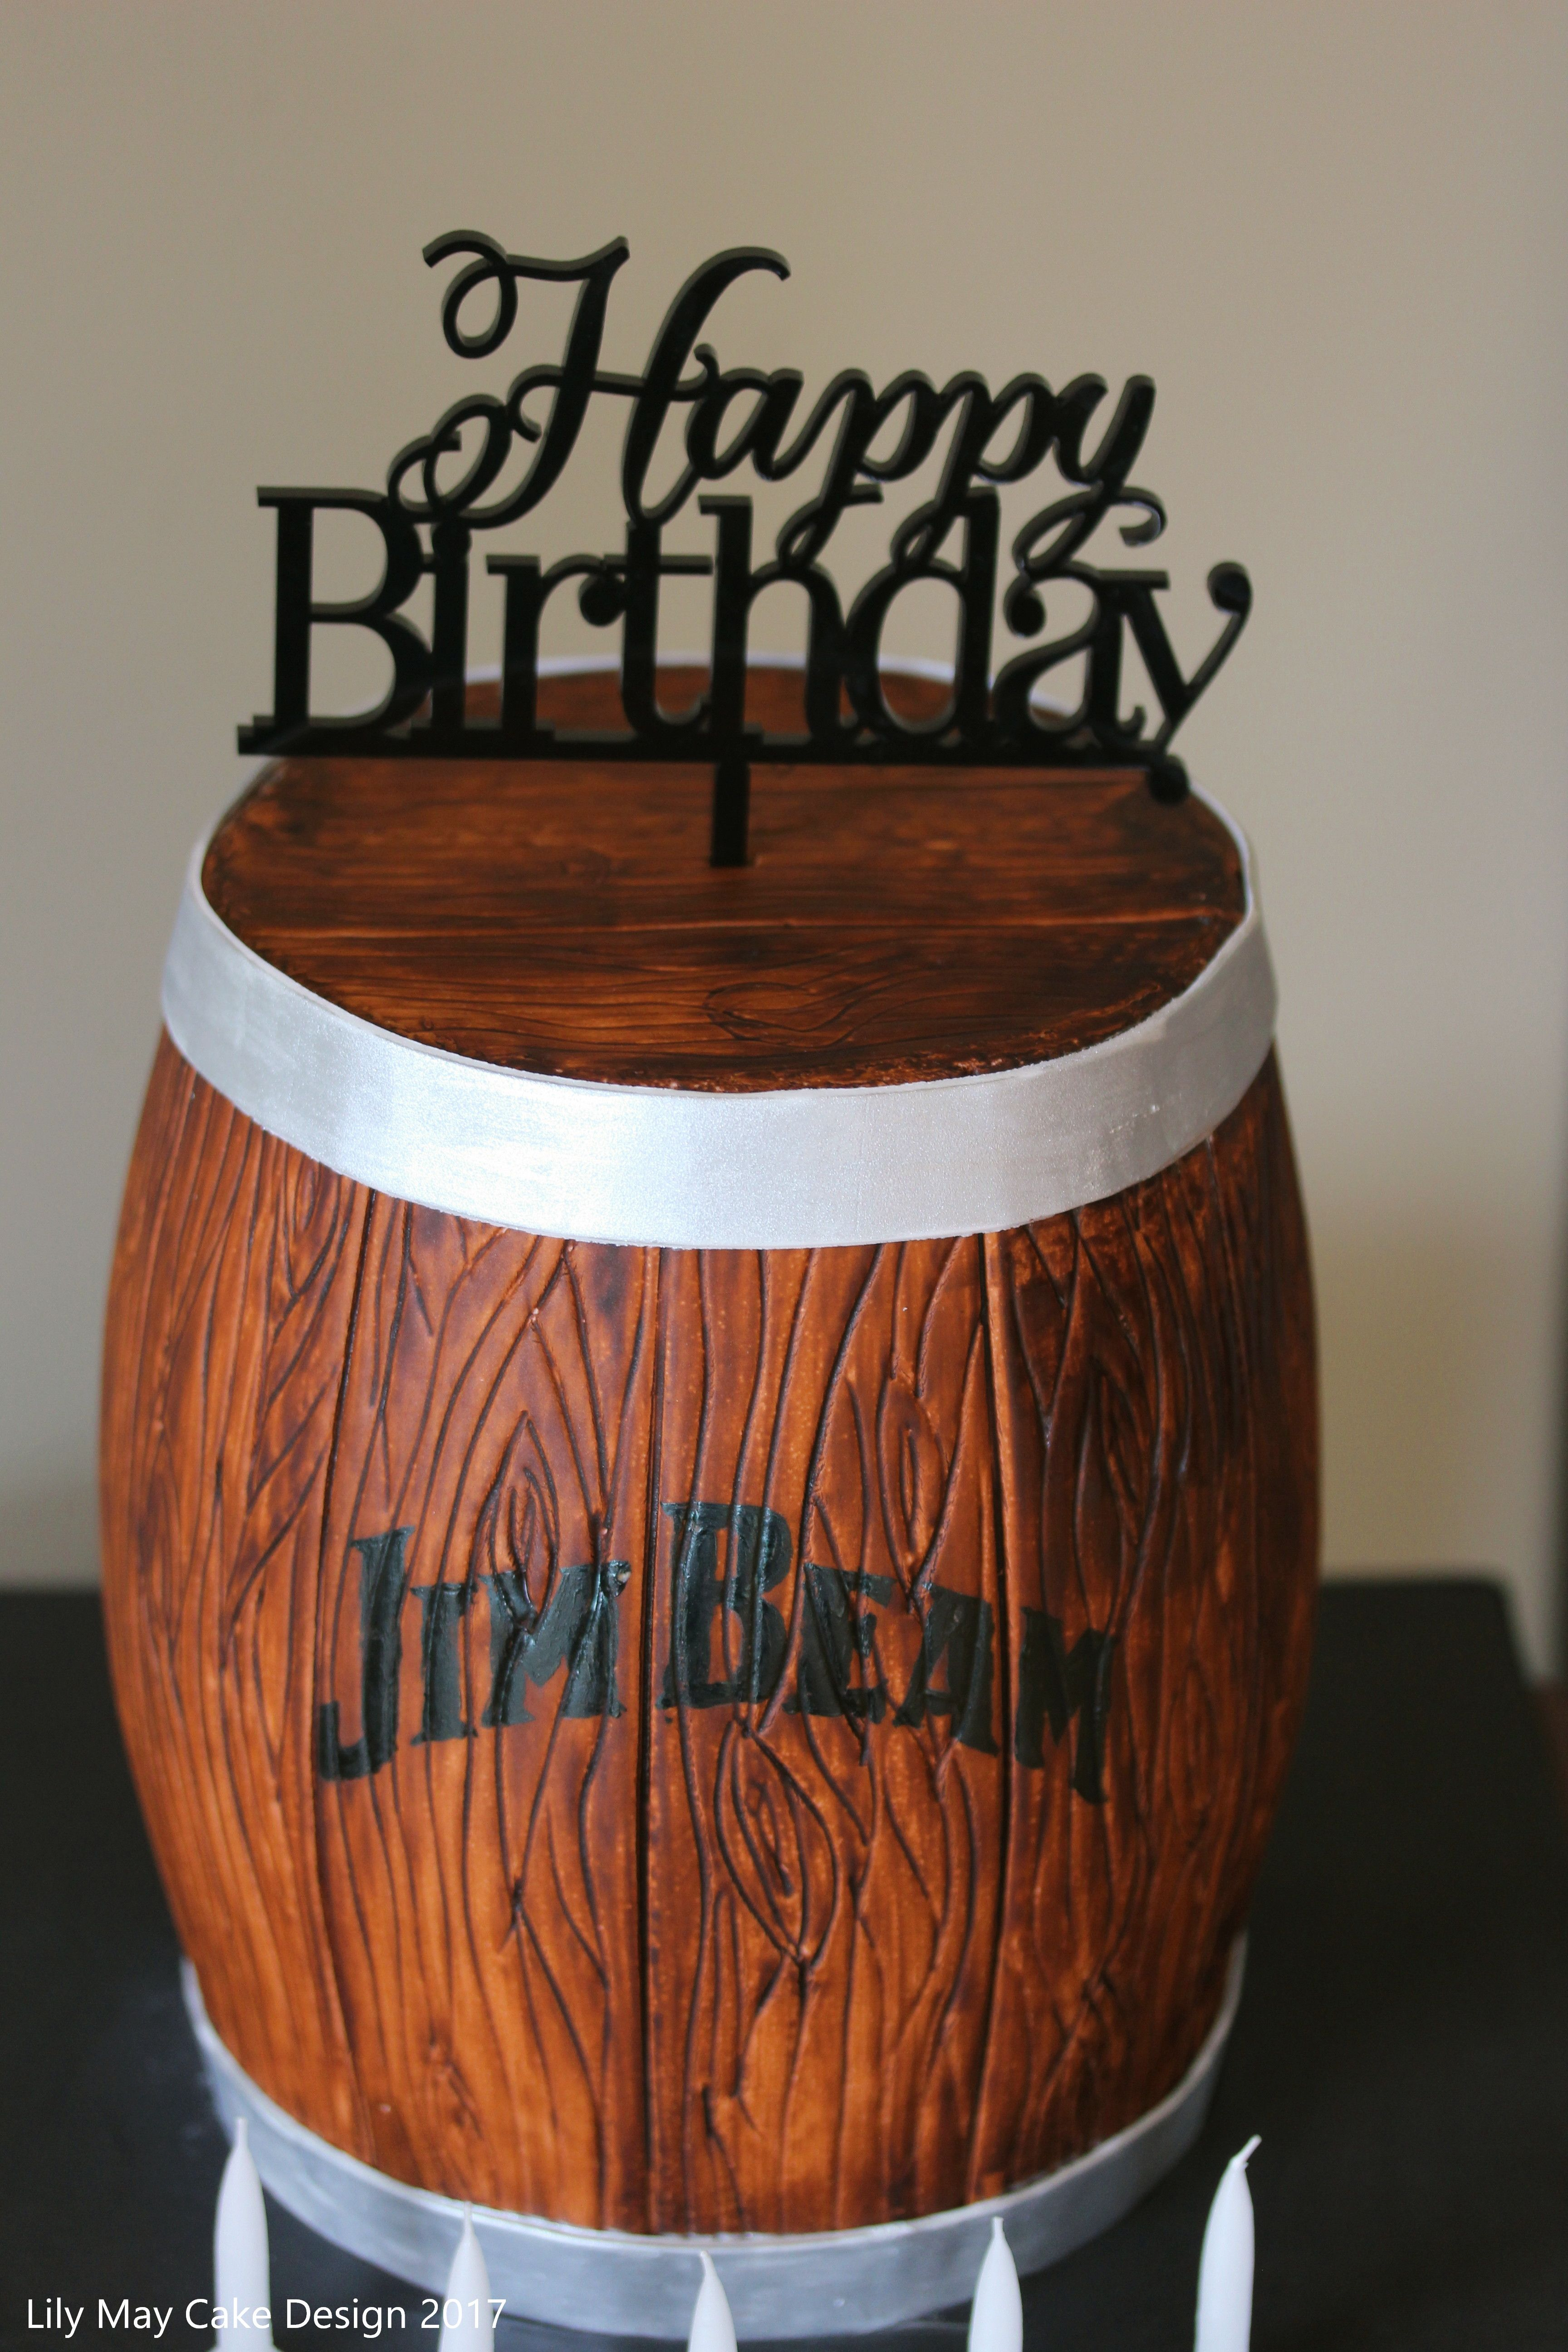 Our Take On A Jim Beam Barrel Cake With Hand Painted Jim Beam Logo. Would